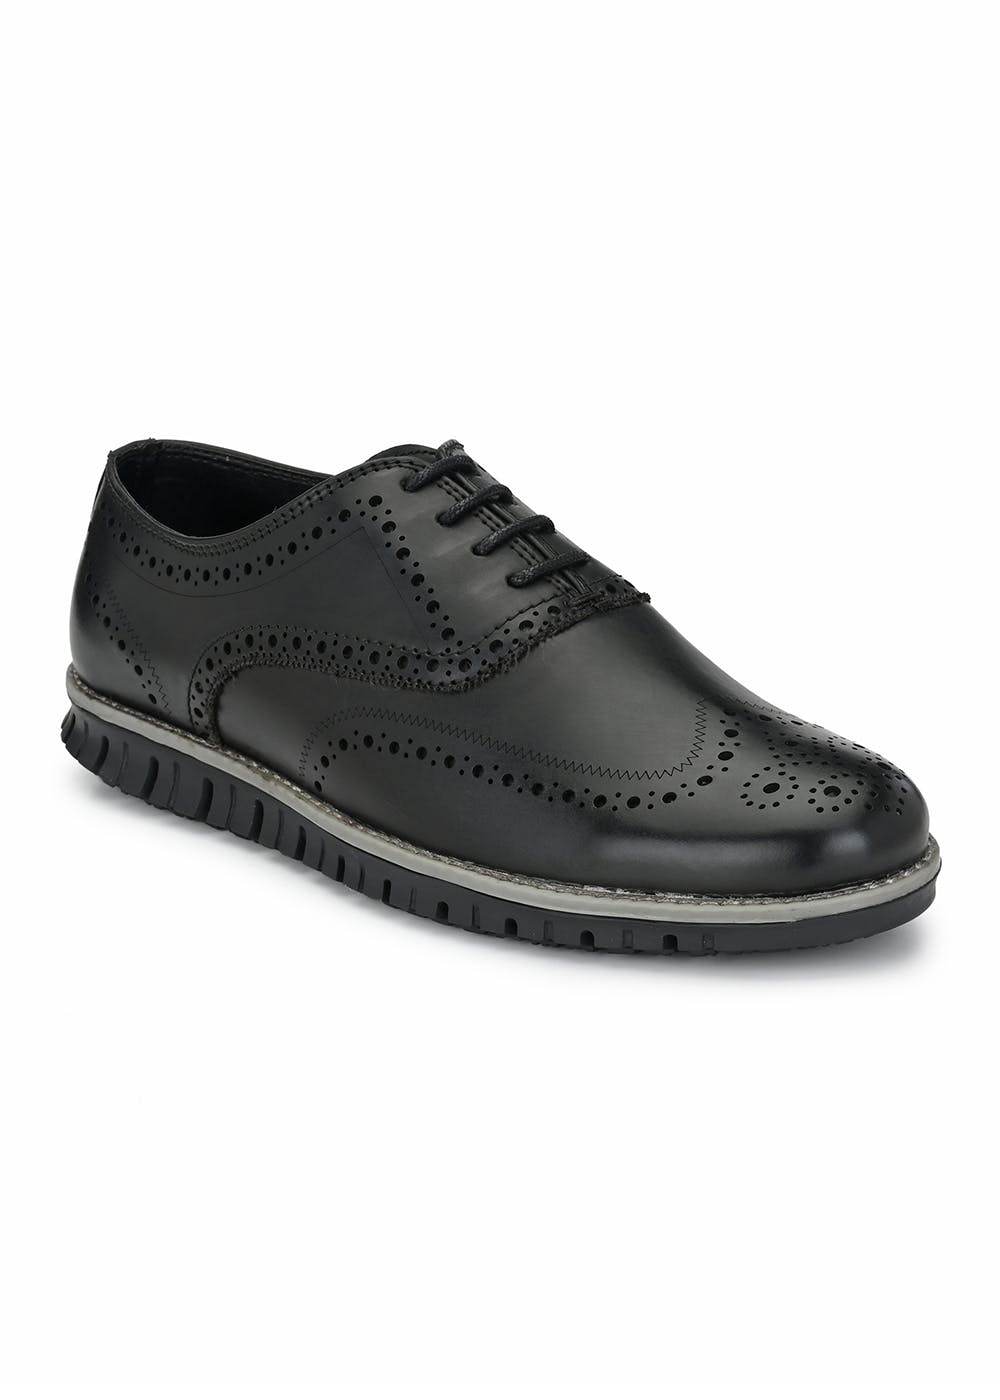 Perforated Pattern Detail Solid Casual Shoes